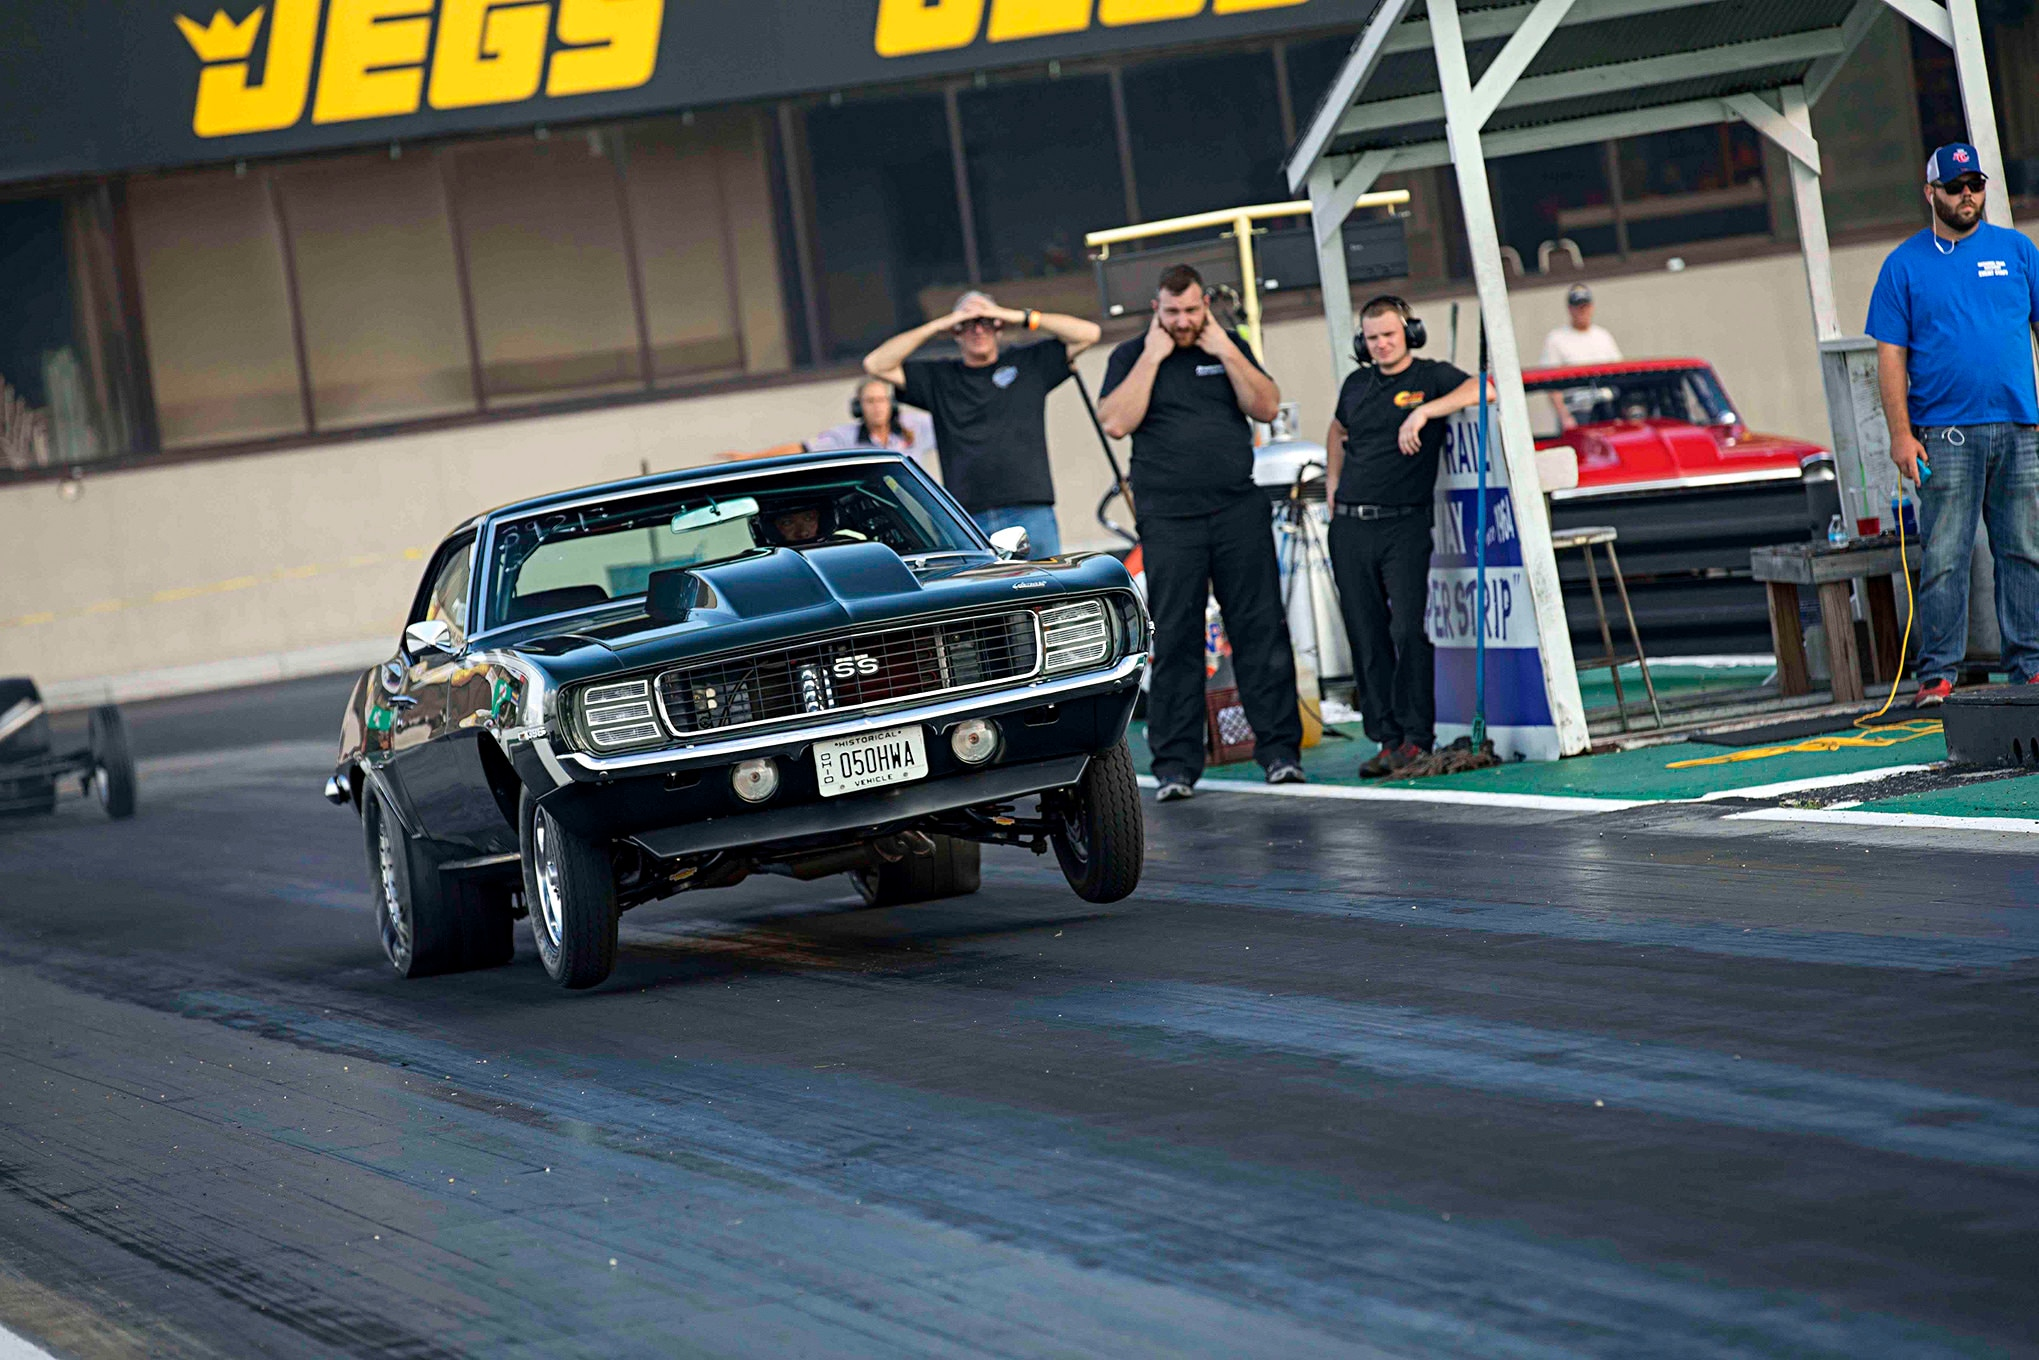 Hot 2017 Super Chevy Show and Track Action from National Trail Raceway